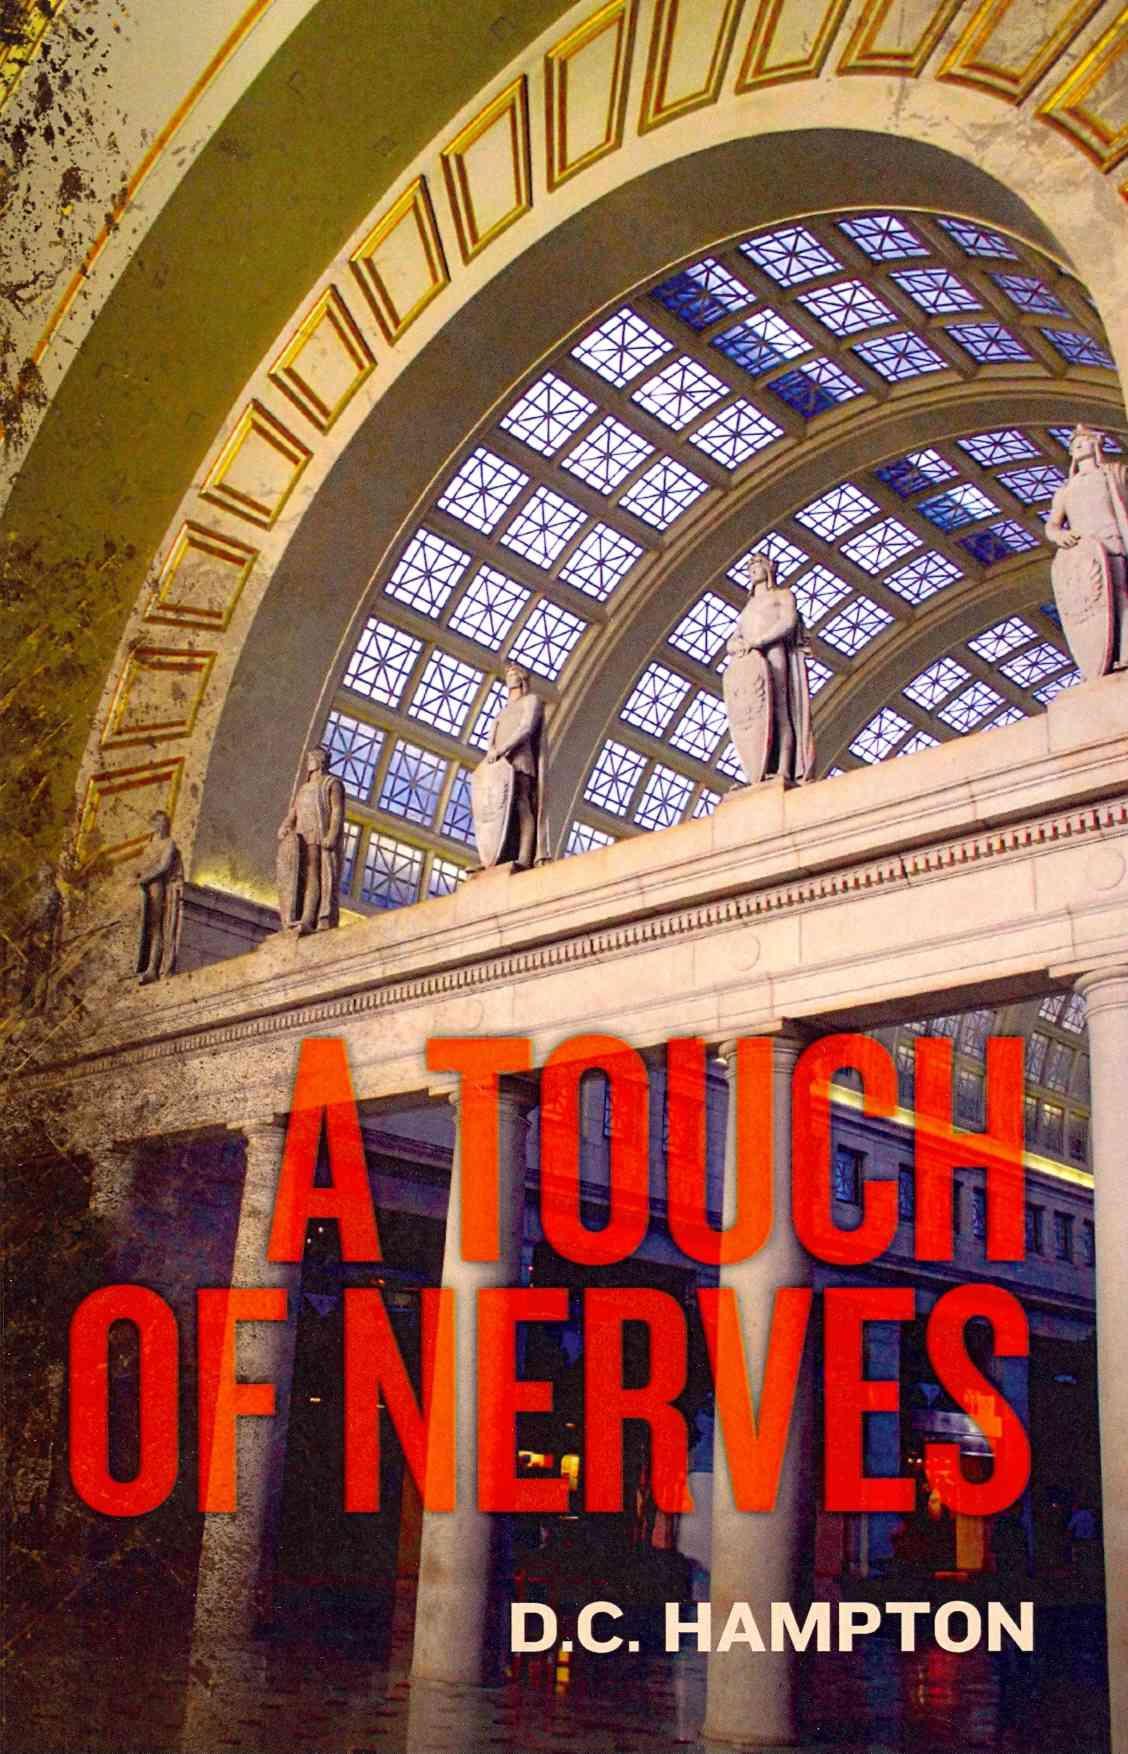 A Touch of Nerves By Hampton, D. C.